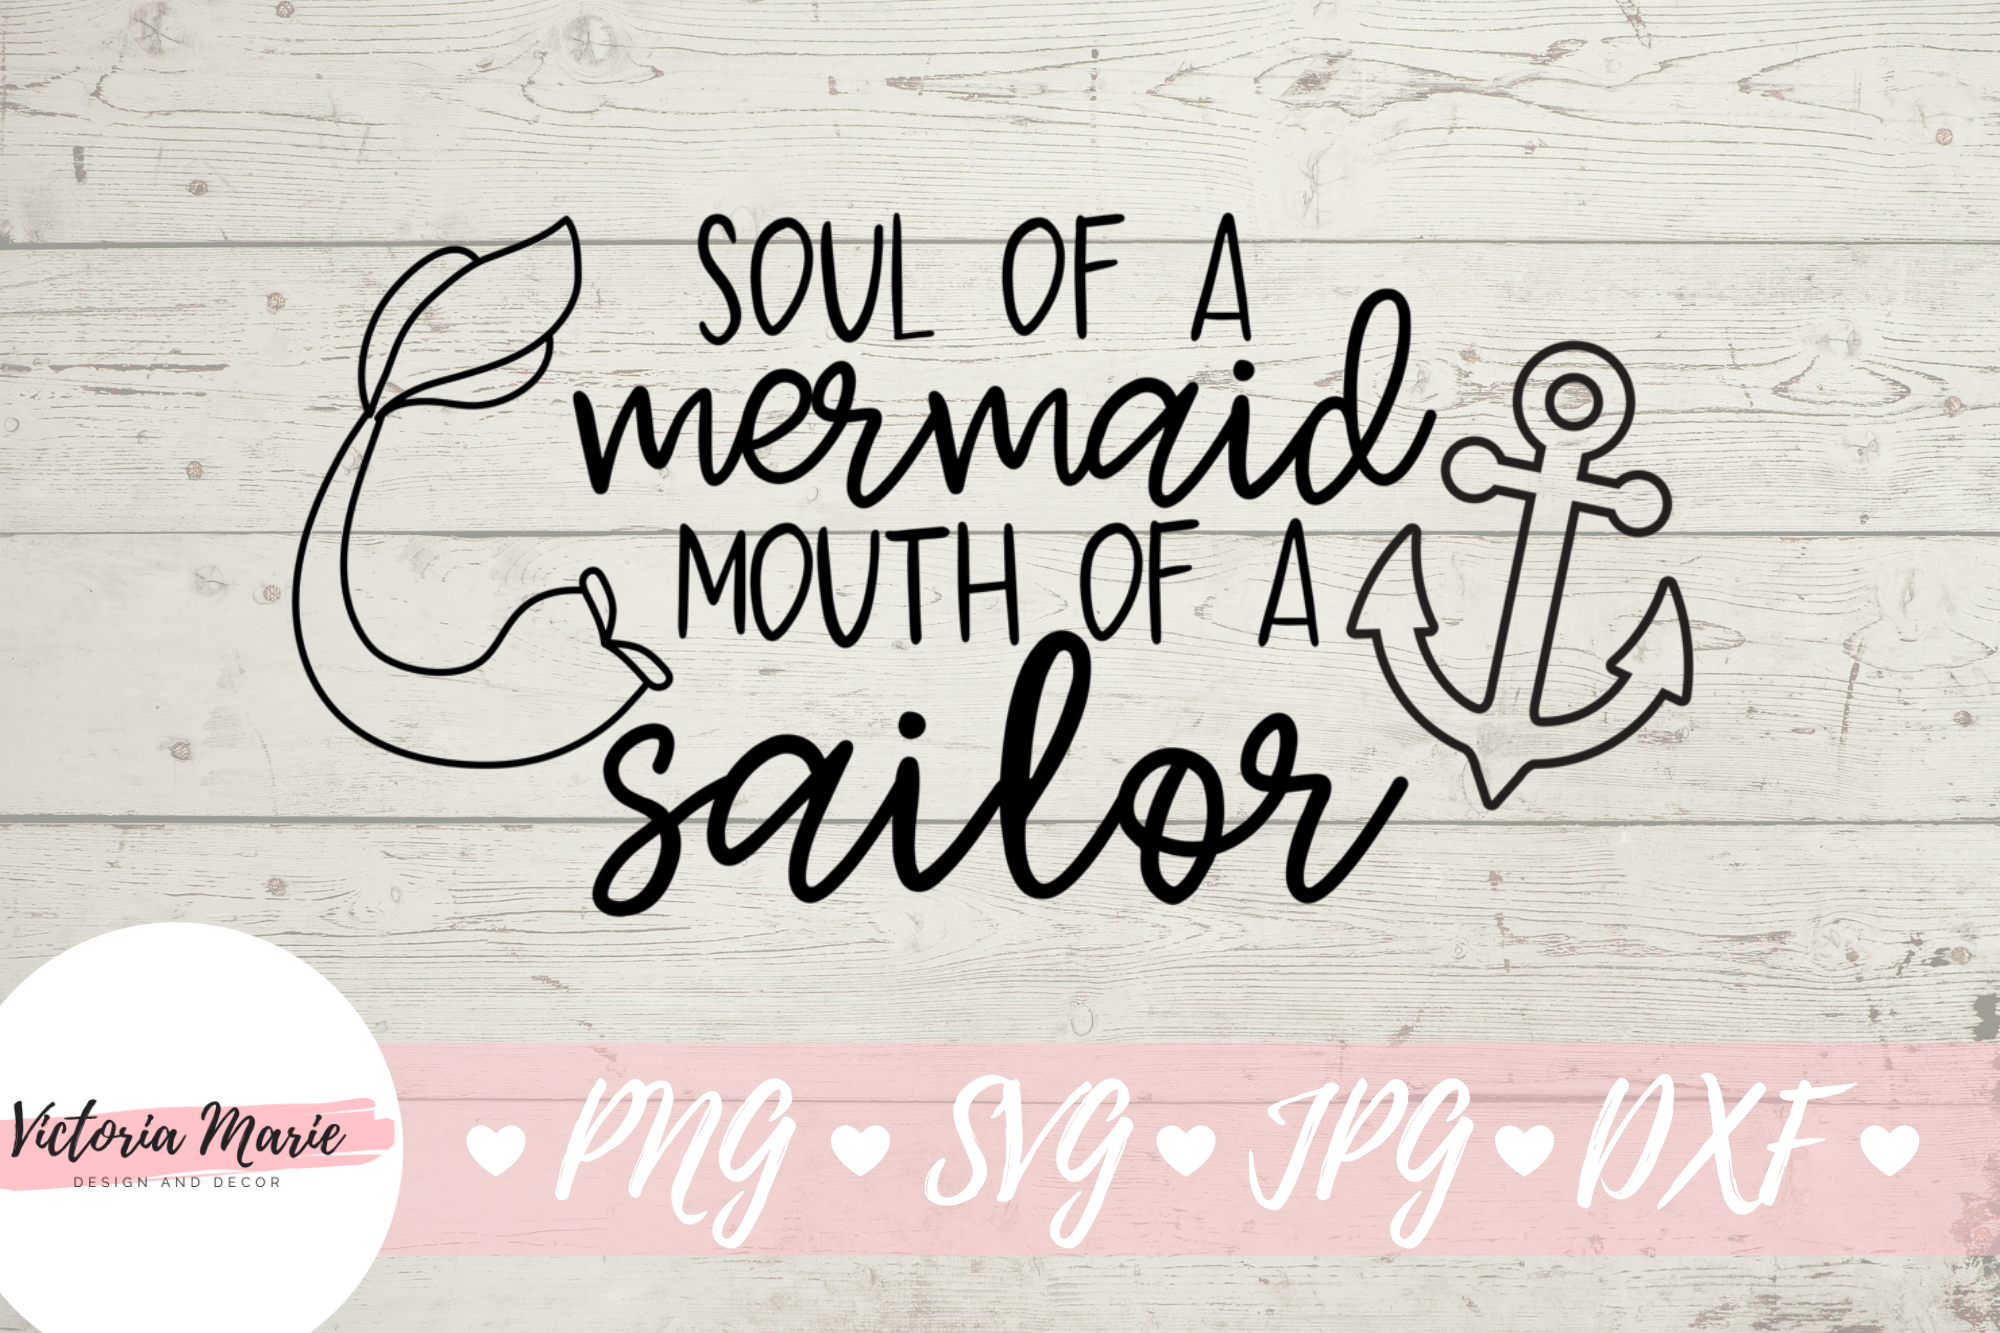 Download Free Soul Of A Mermaid Mouth Of A Sailor Graphic By Victoria Turecamo for Cricut Explore, Silhouette and other cutting machines.